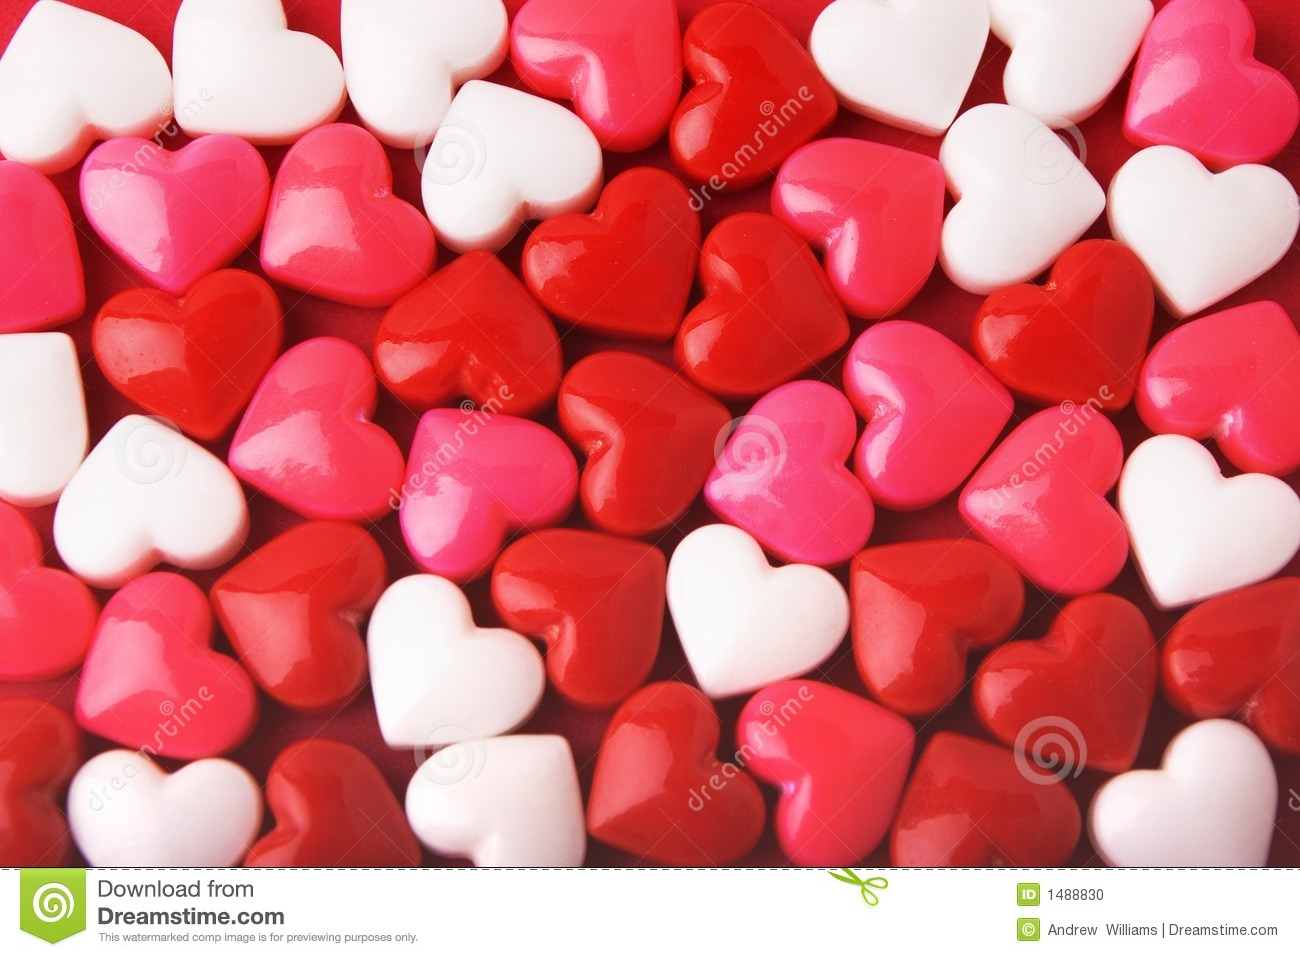 Candy Valentine Hearts Stock Photo - Image: 1488830